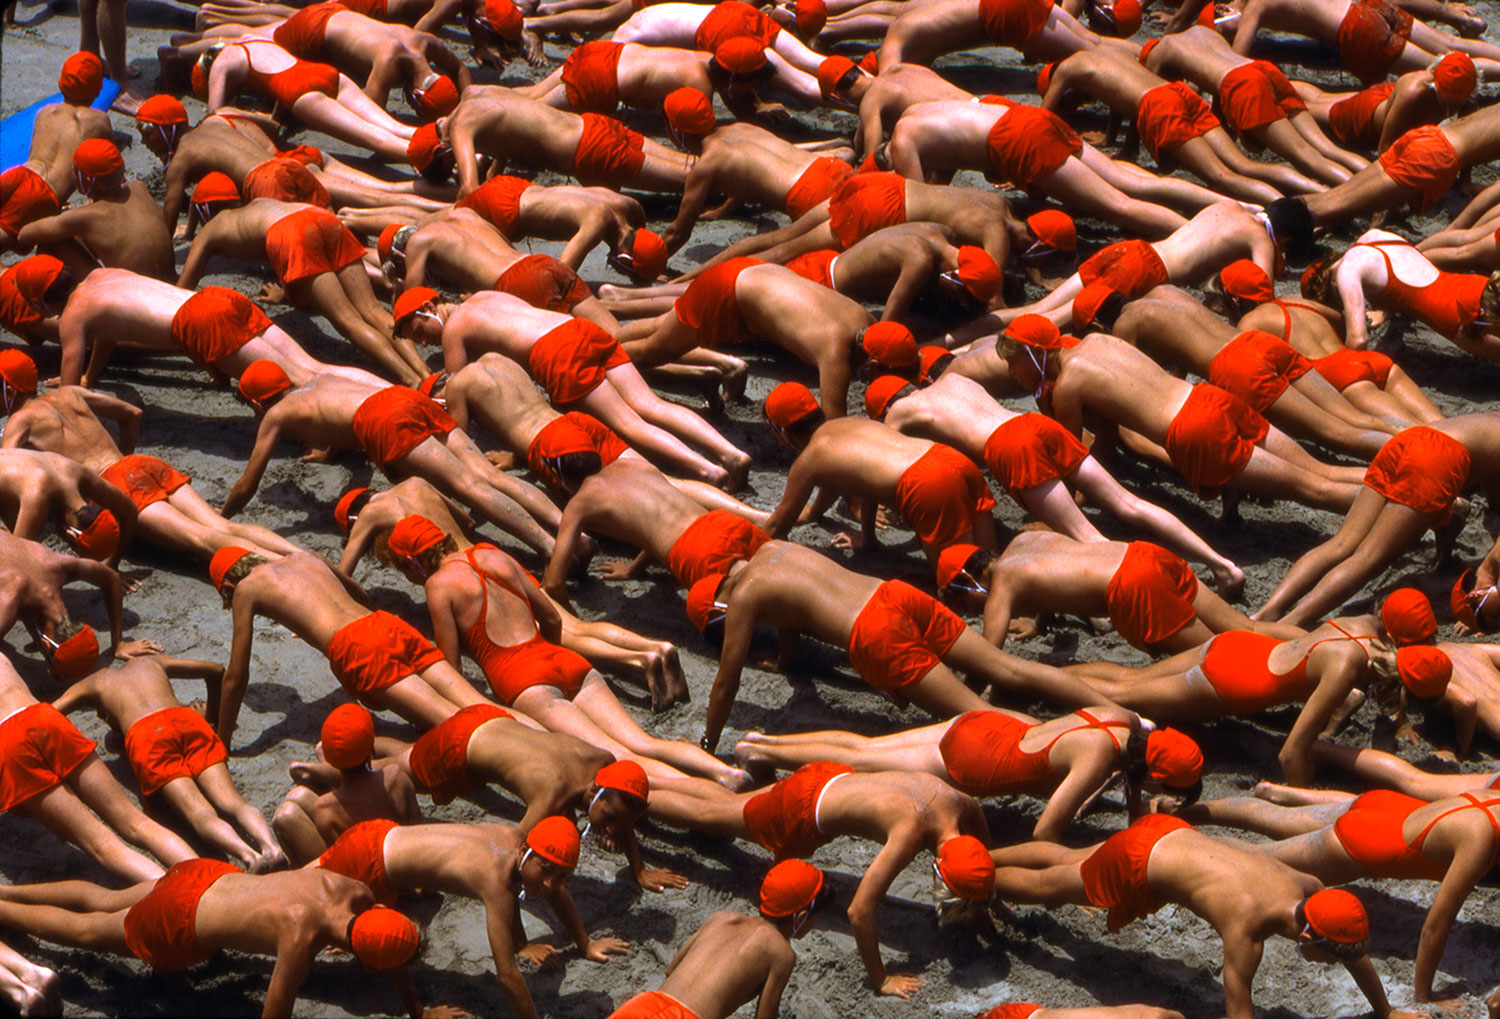 ROGER CAMP  RED PUSHUPS  HP ARCHIVAL PRINT